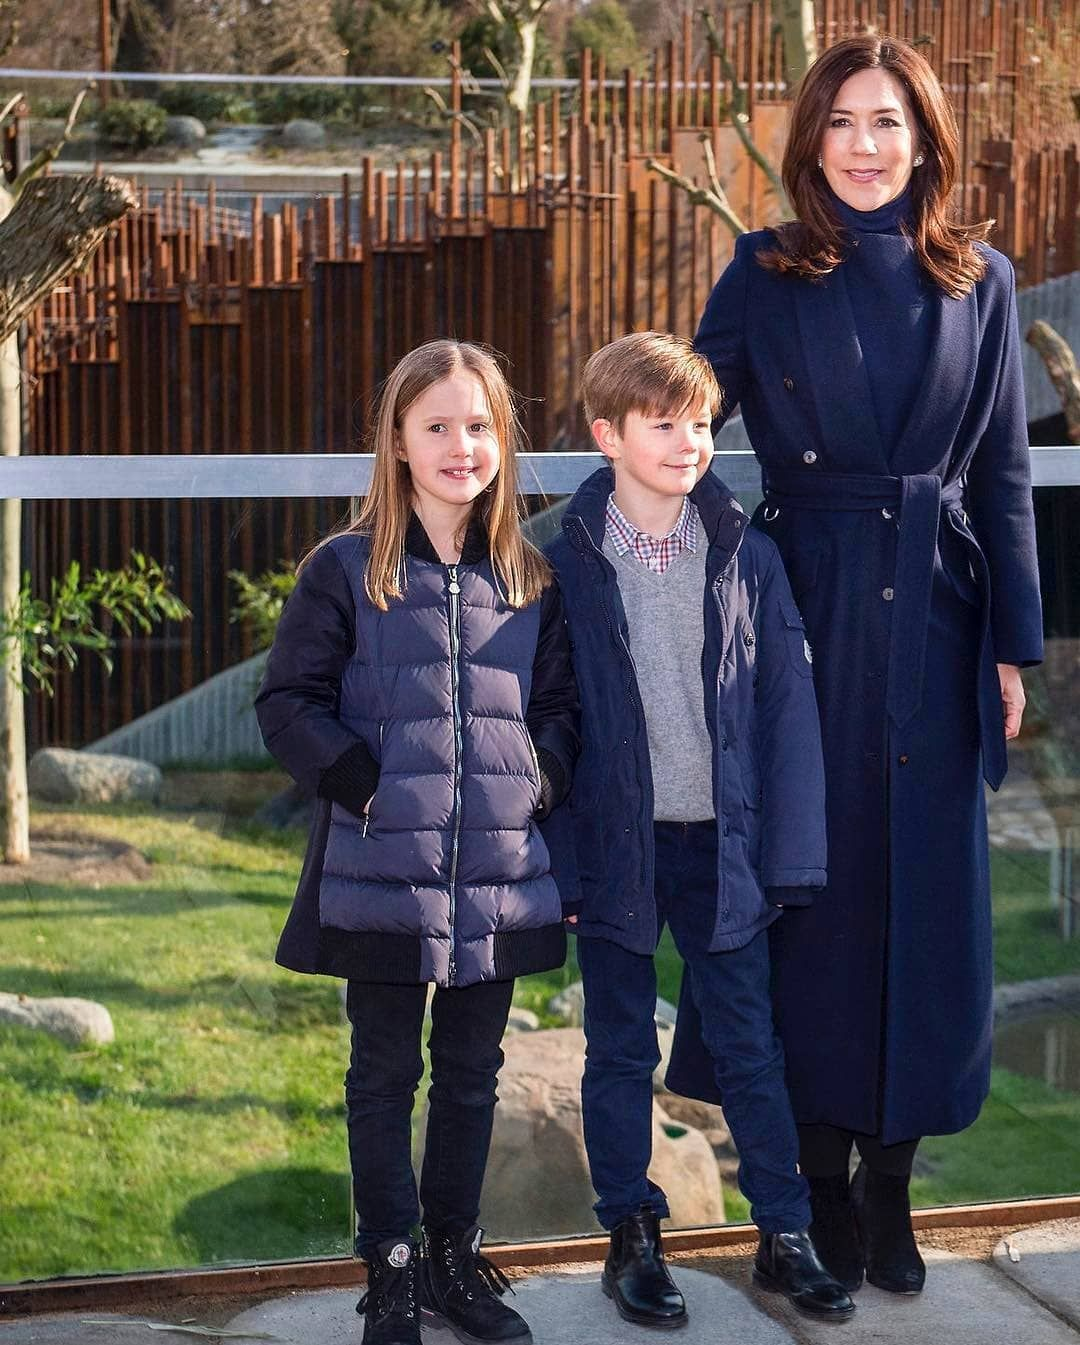 H K H Prinsesse Josephine On Instagram Josephine And Her Twin Brother Vincent Joined Their Mama Crown Princ Princess Mary Crown Princess Mary Crown Princess